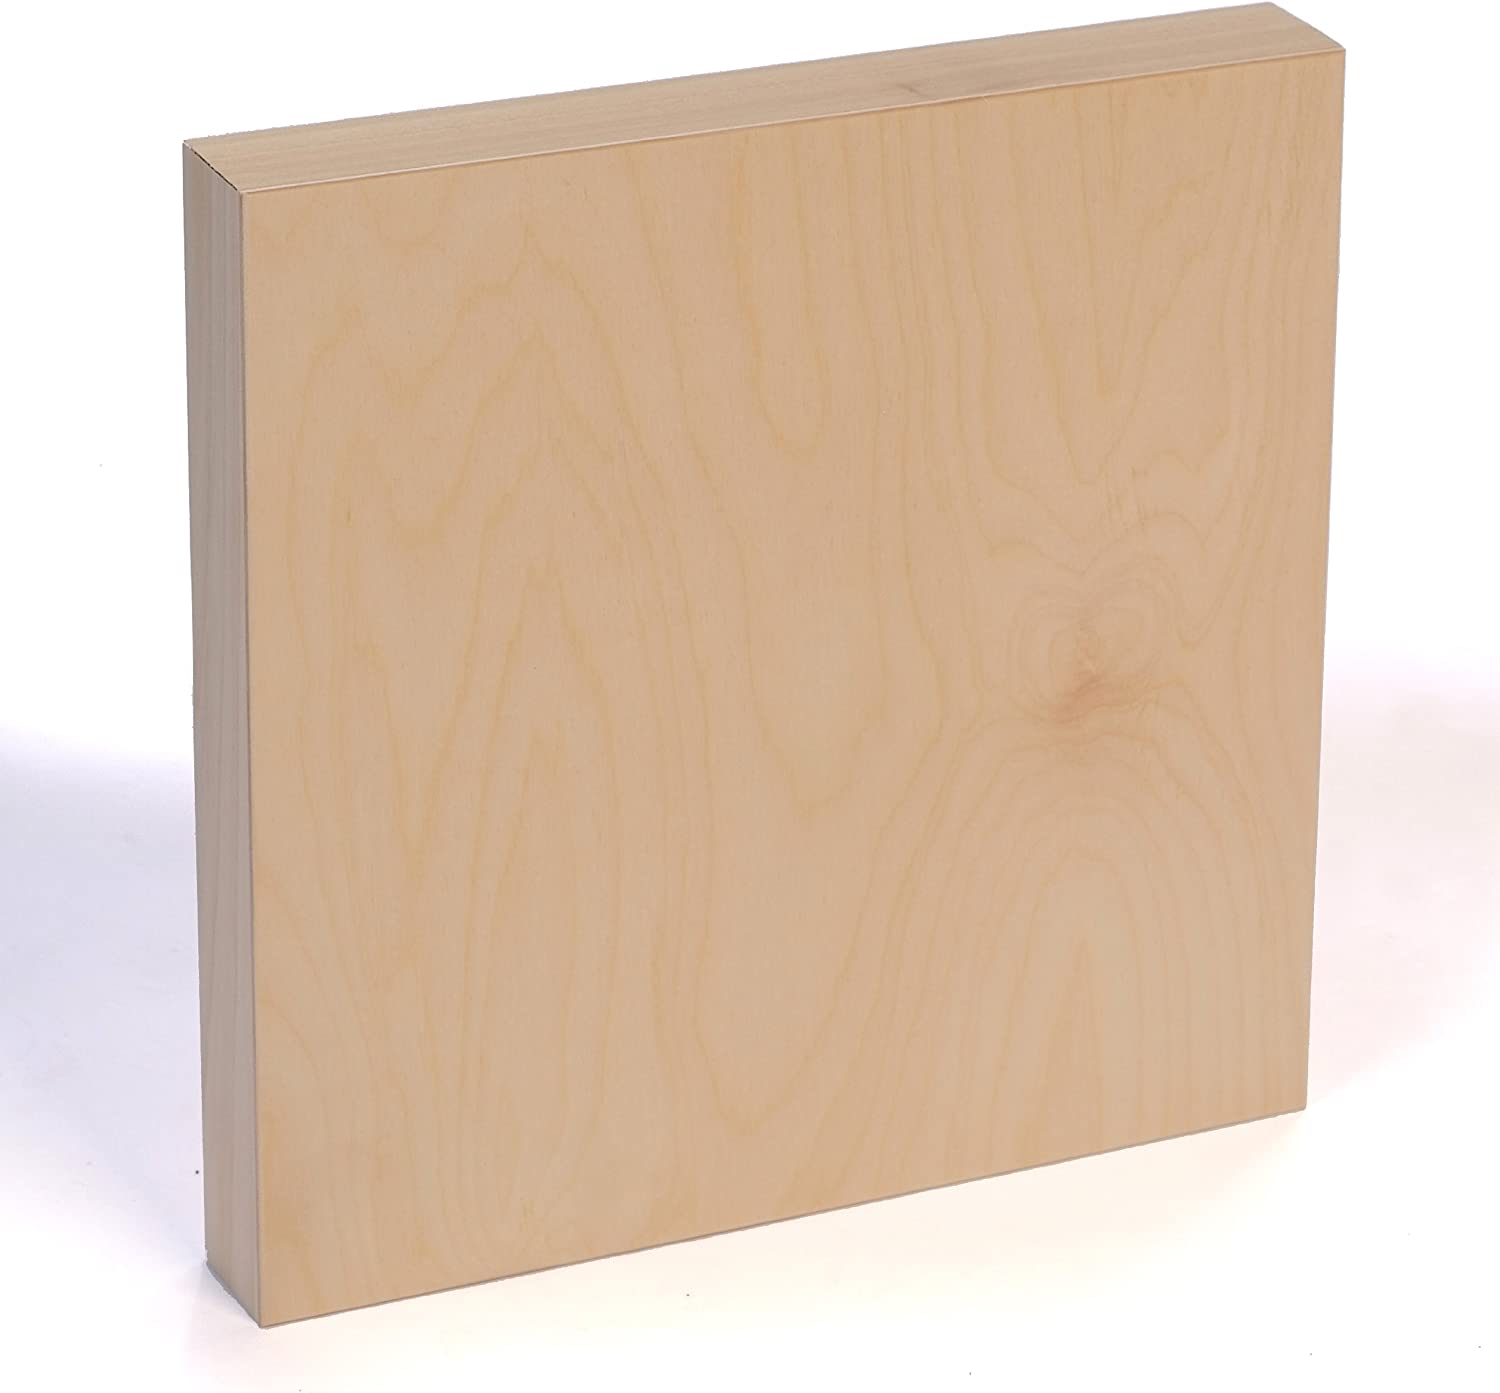 American Easel 4 Inch by 4 Inch by 7//8 Inch Deep Cradled Painting Panel